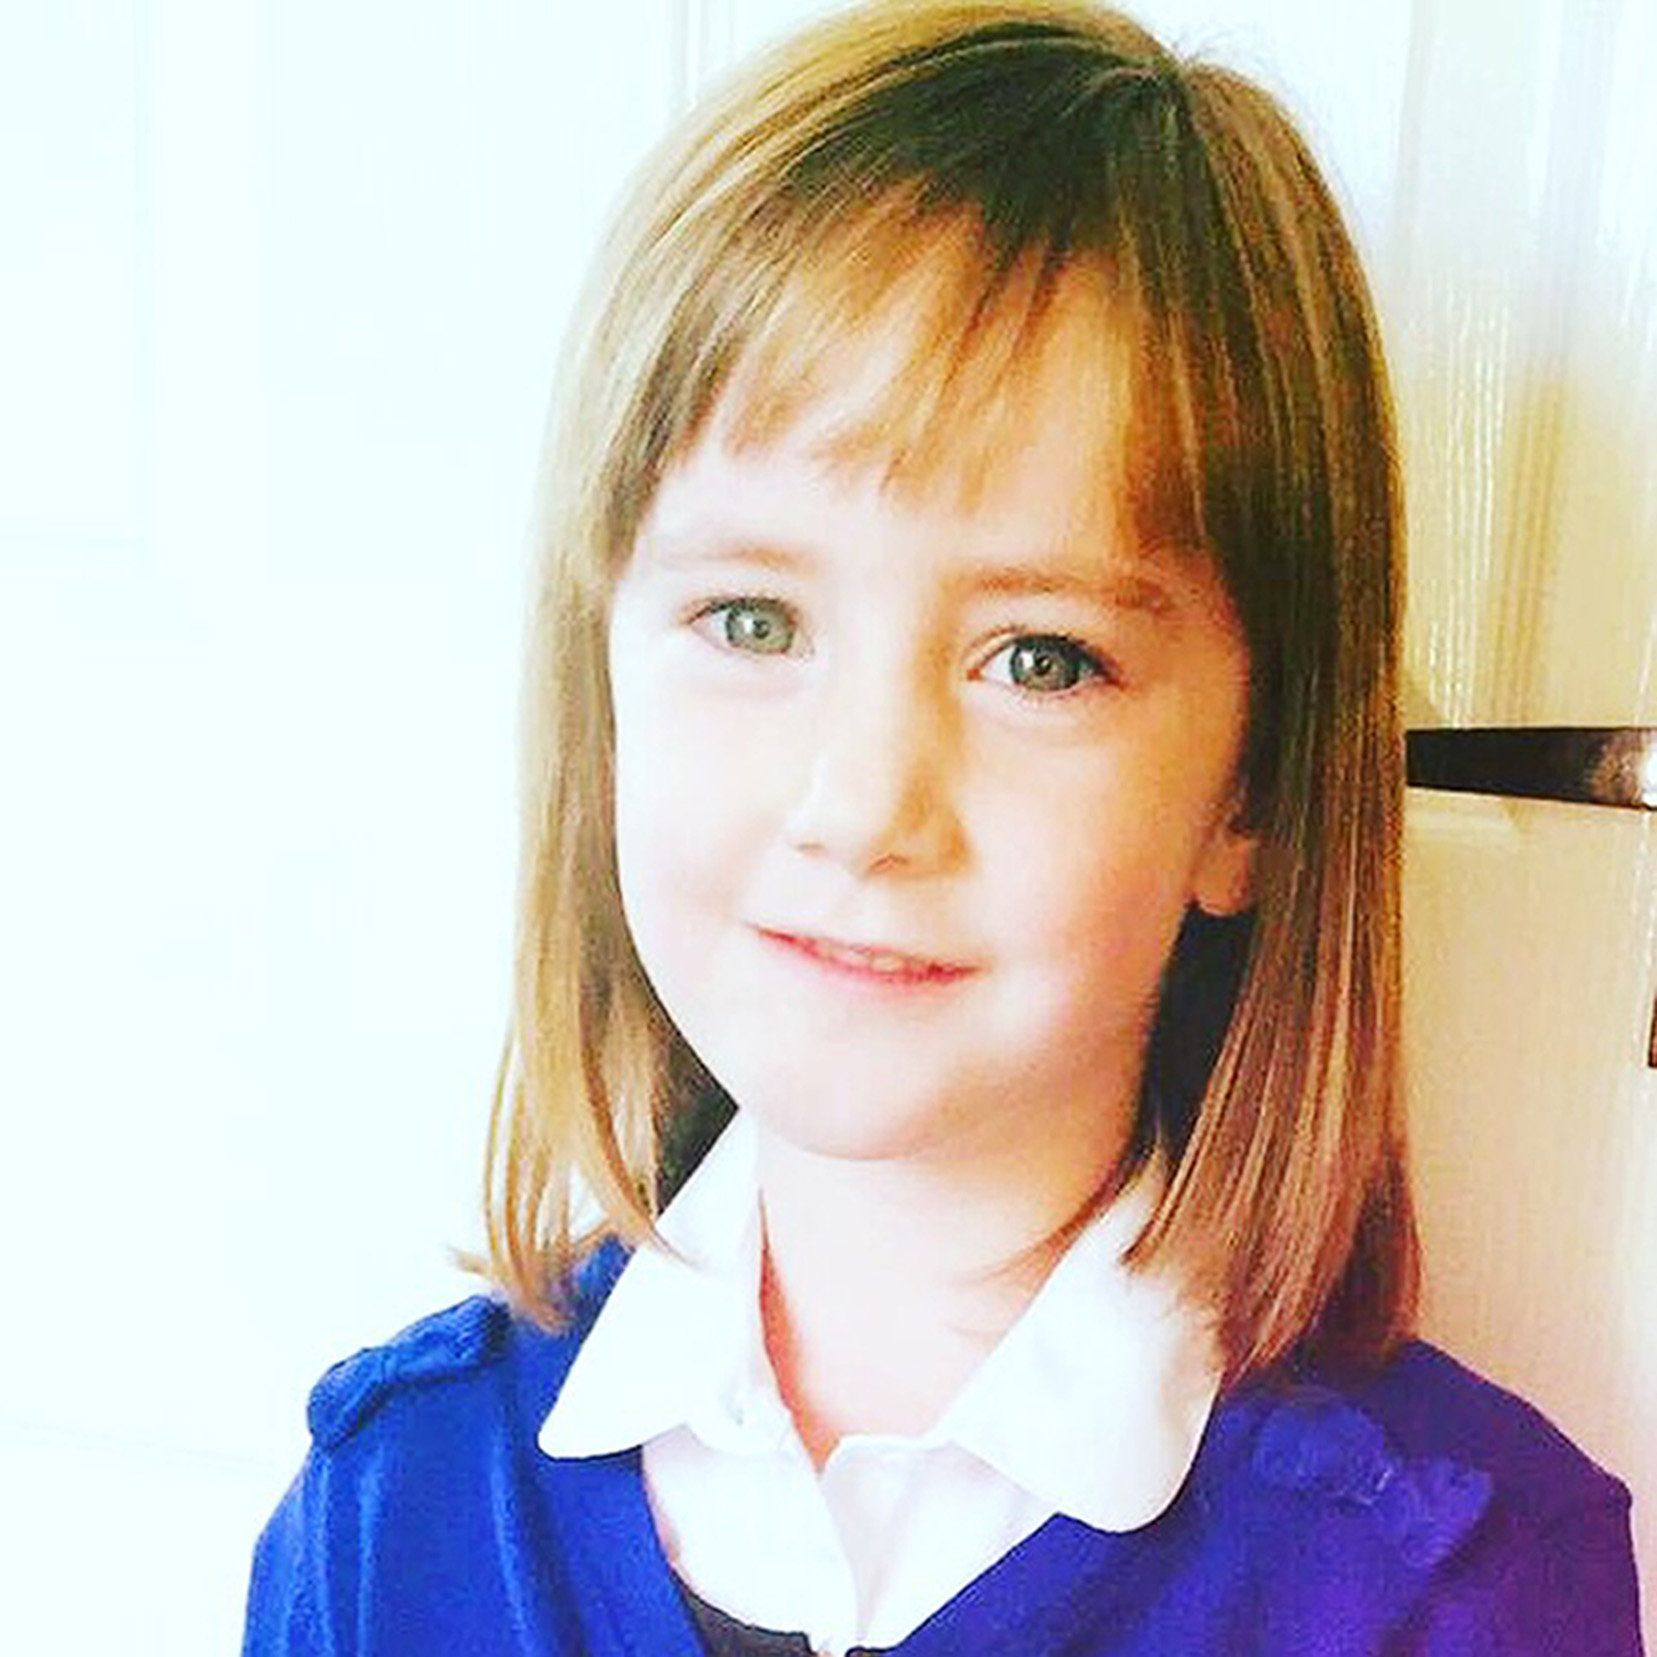 'I Took Her Away To Die': Mother Tells Of Anguish After Her 4-Year-Old Daughter Died Hours After Being Sent Home From